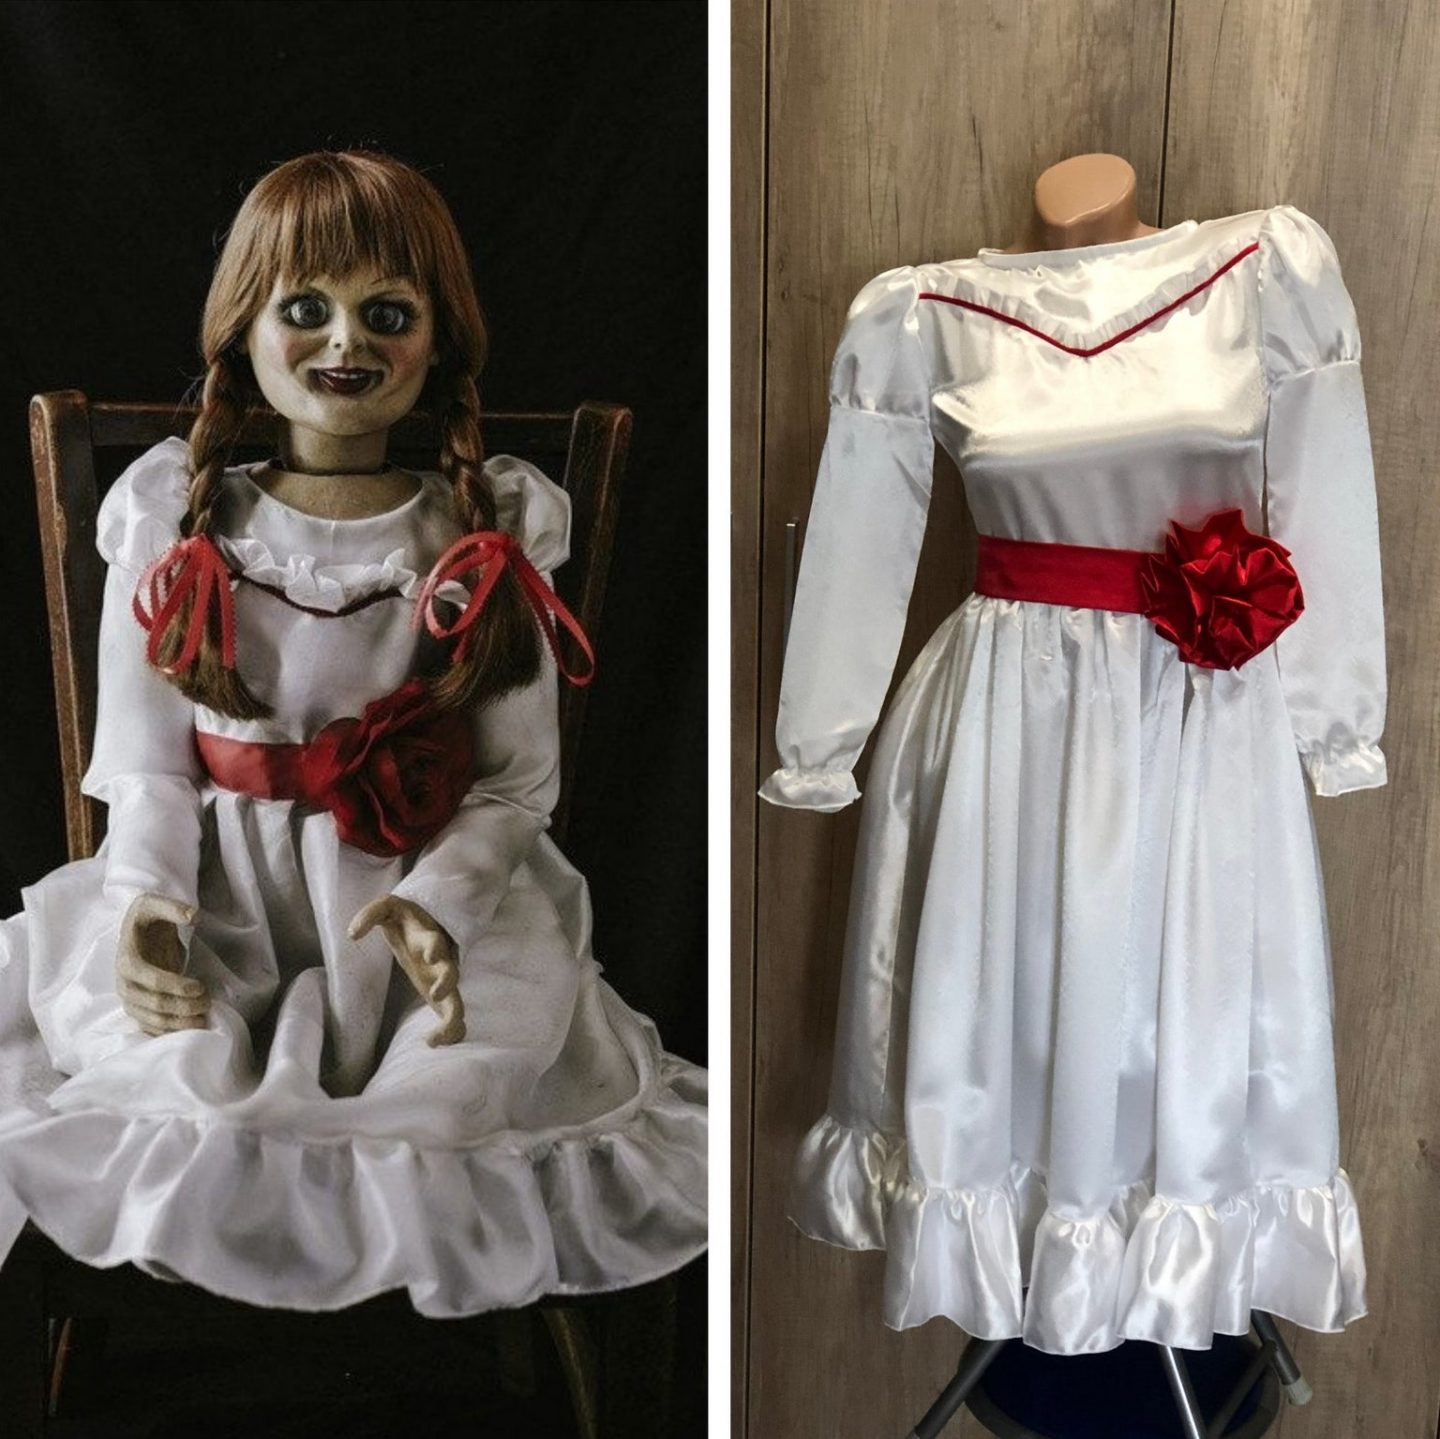 Scary Annabelle Halloween costume for women